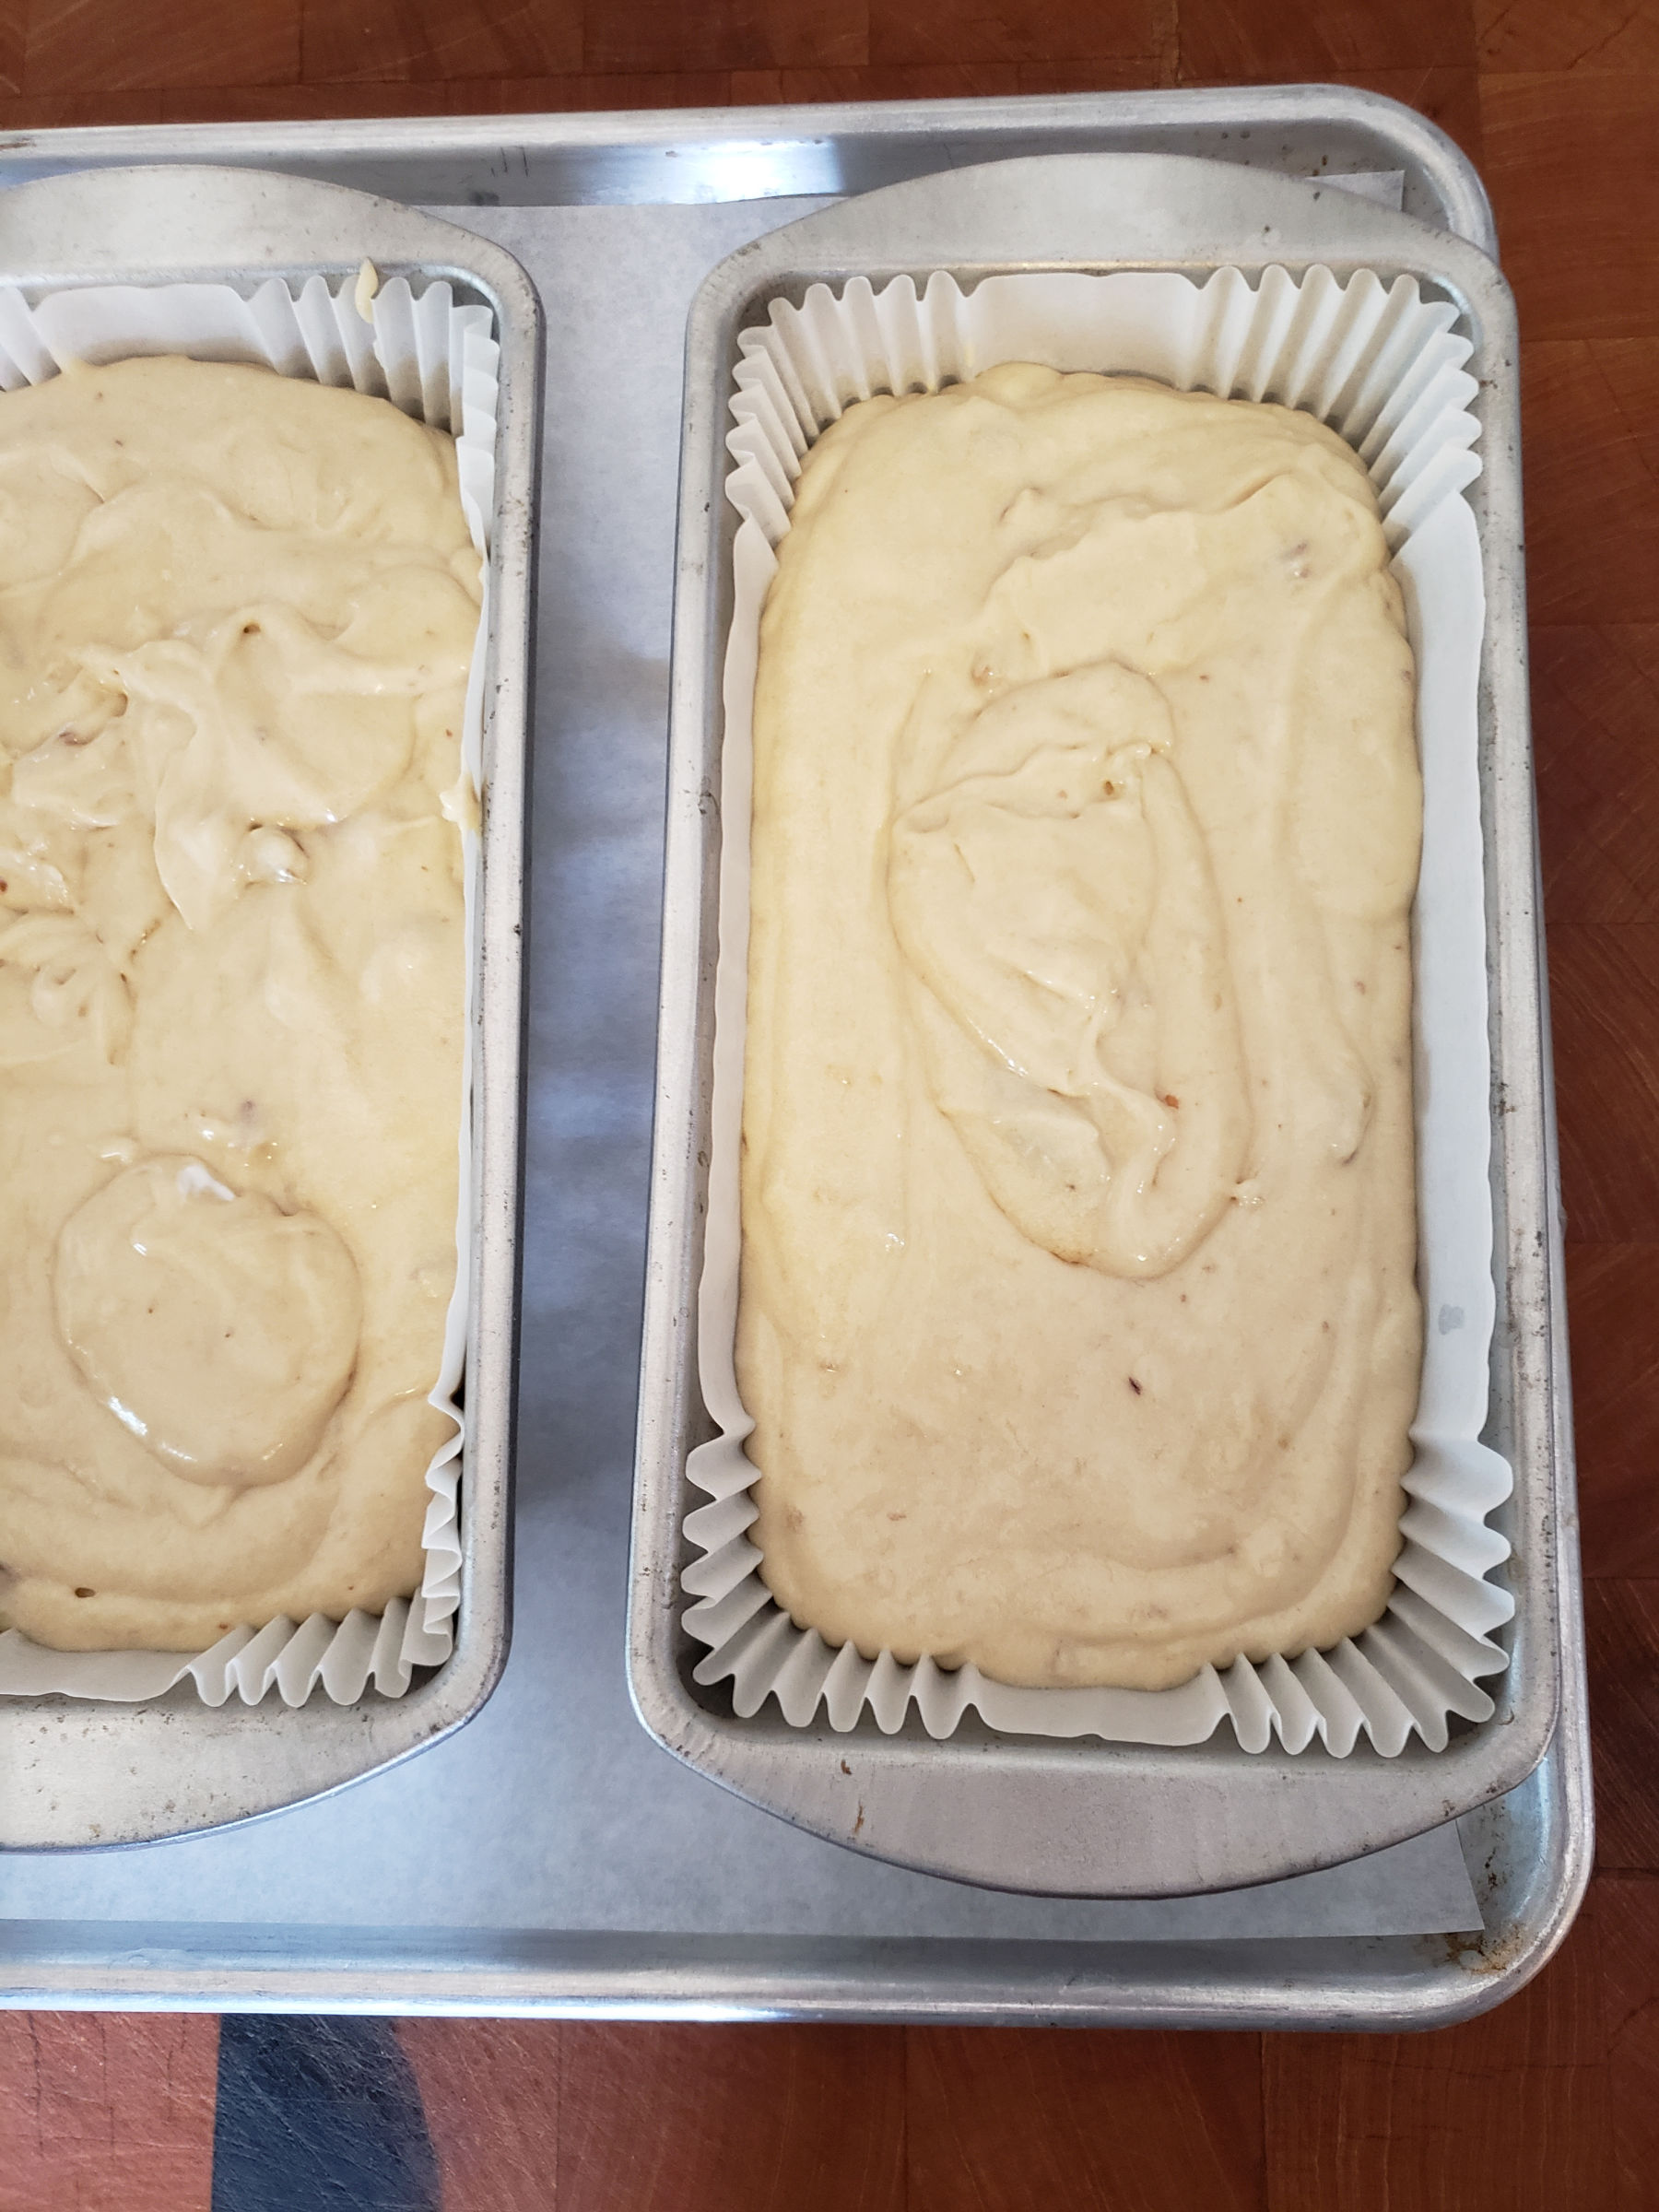 banana bread batter in loaf pans lined with paper liners.